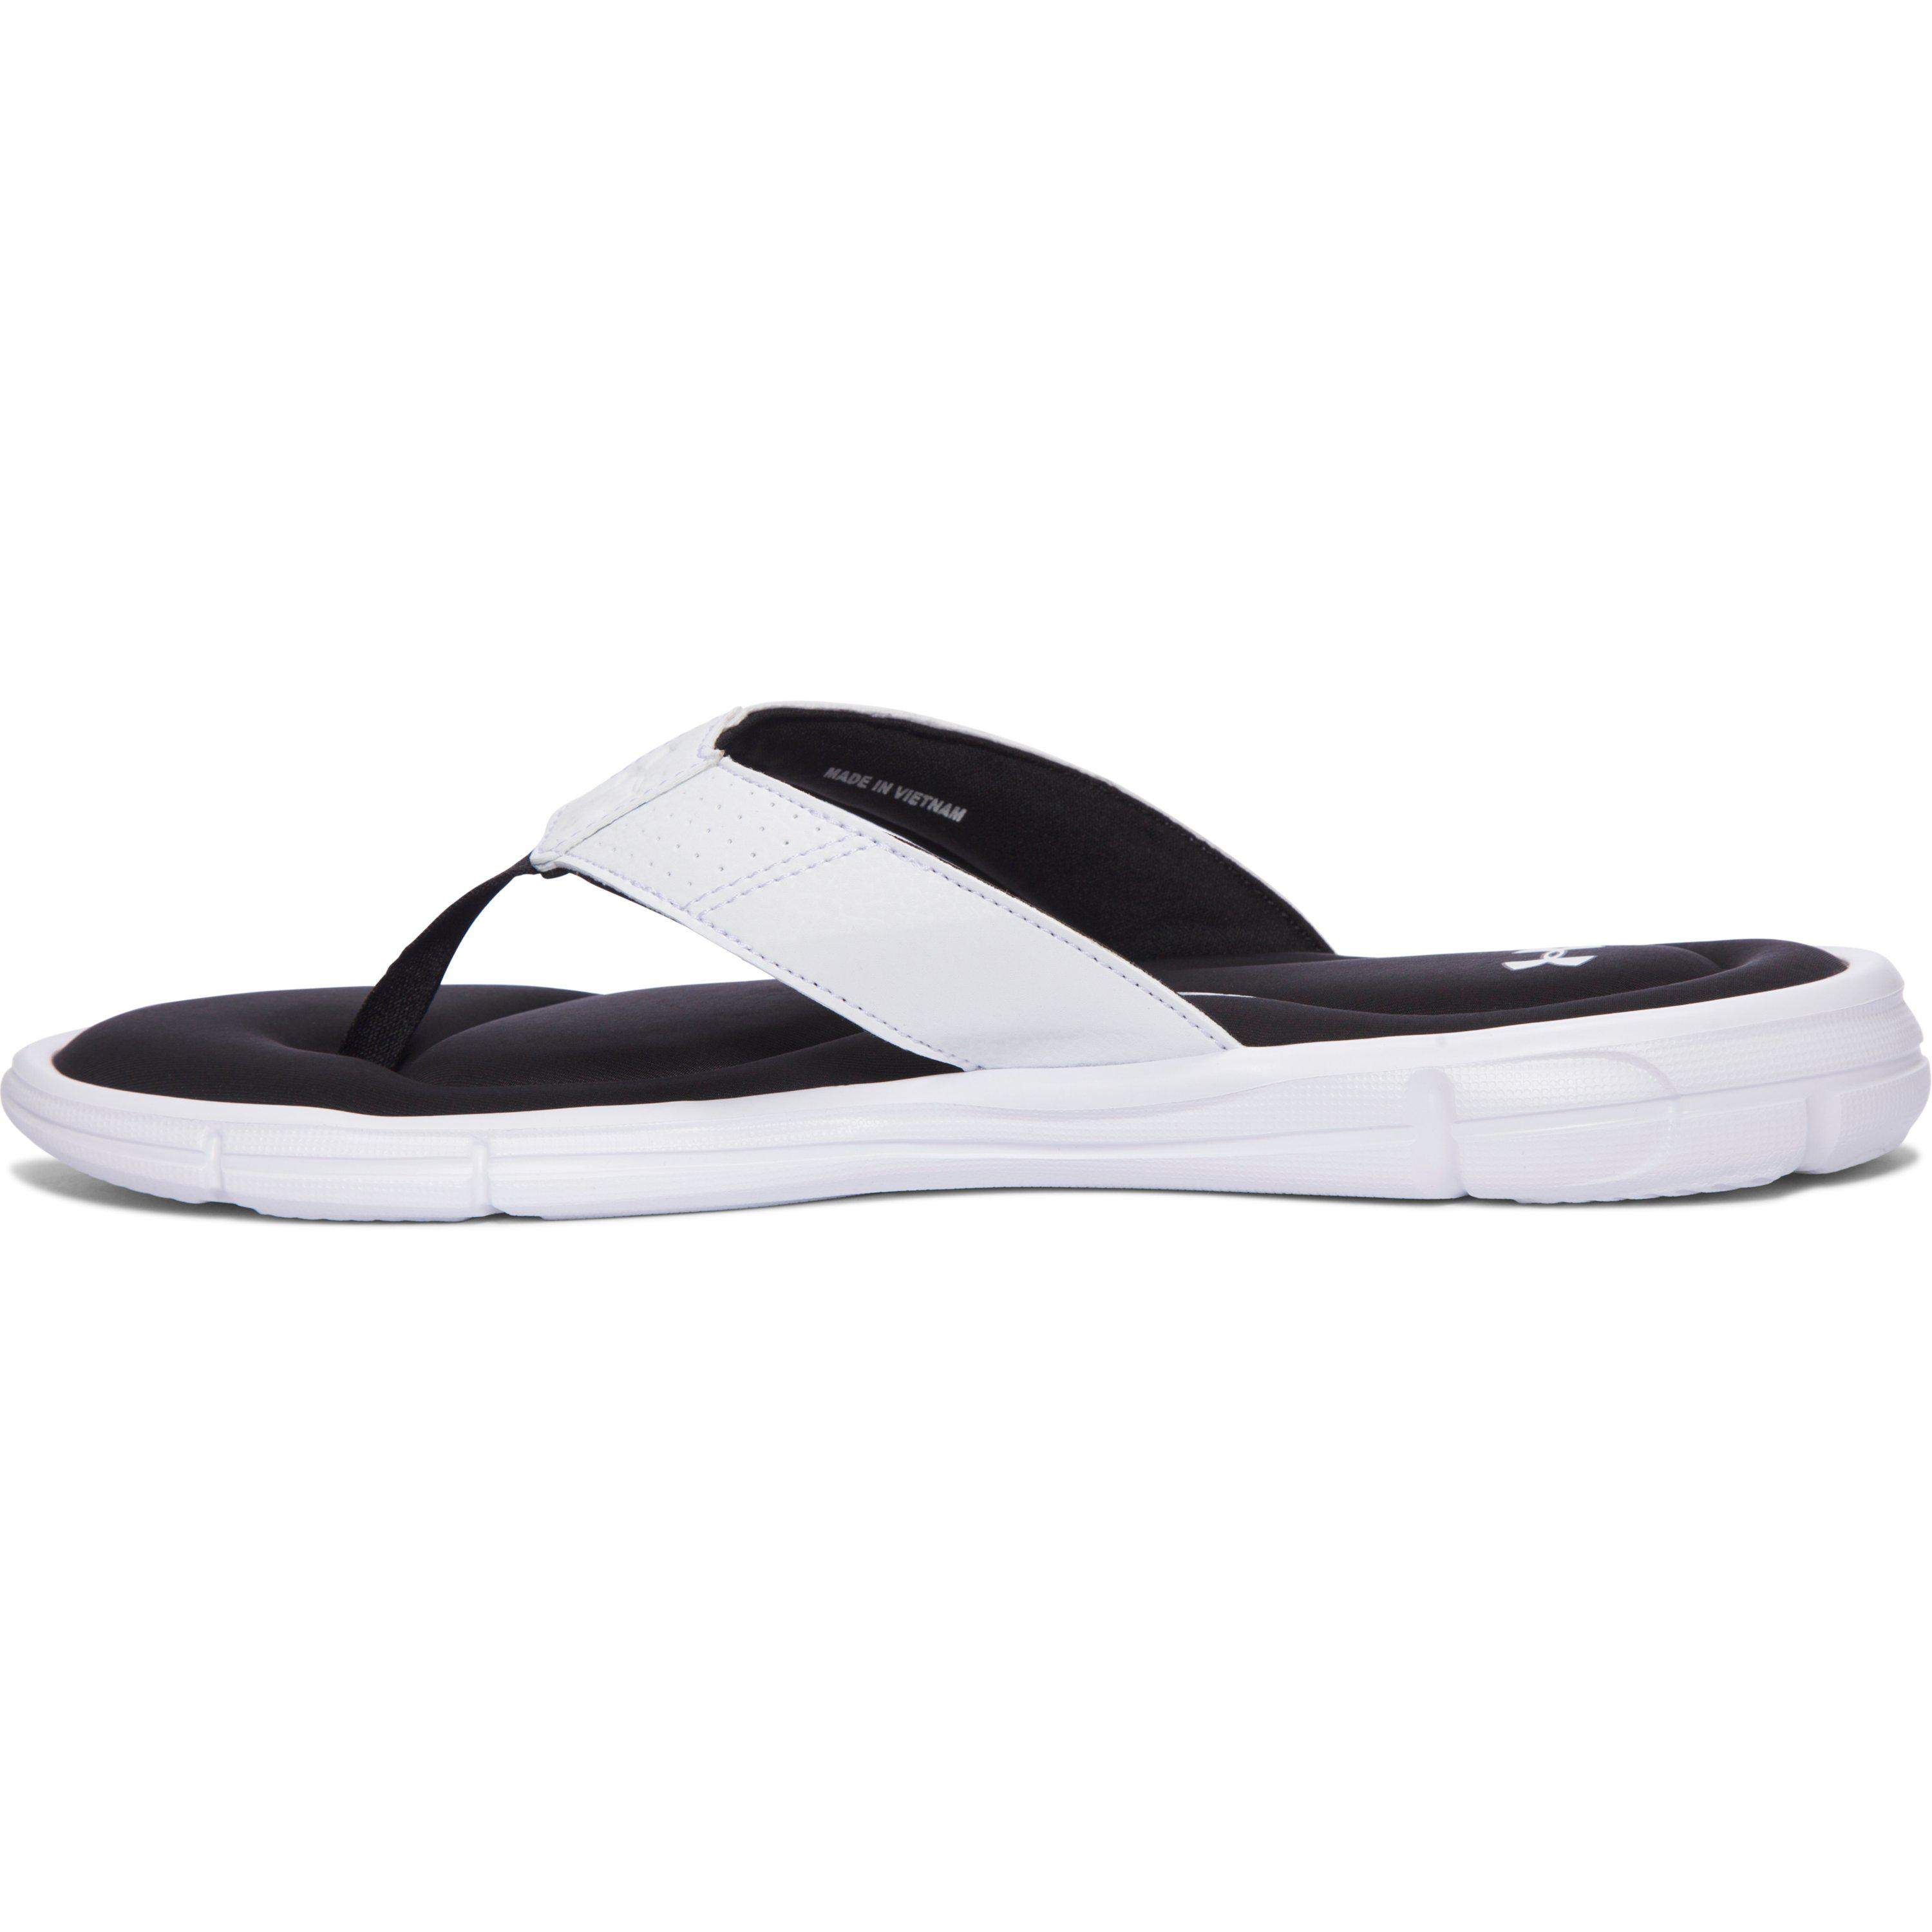 03e42a6f81d4 Under Armour Ignite Ii Thong Flip Flops in White for Men - Lyst